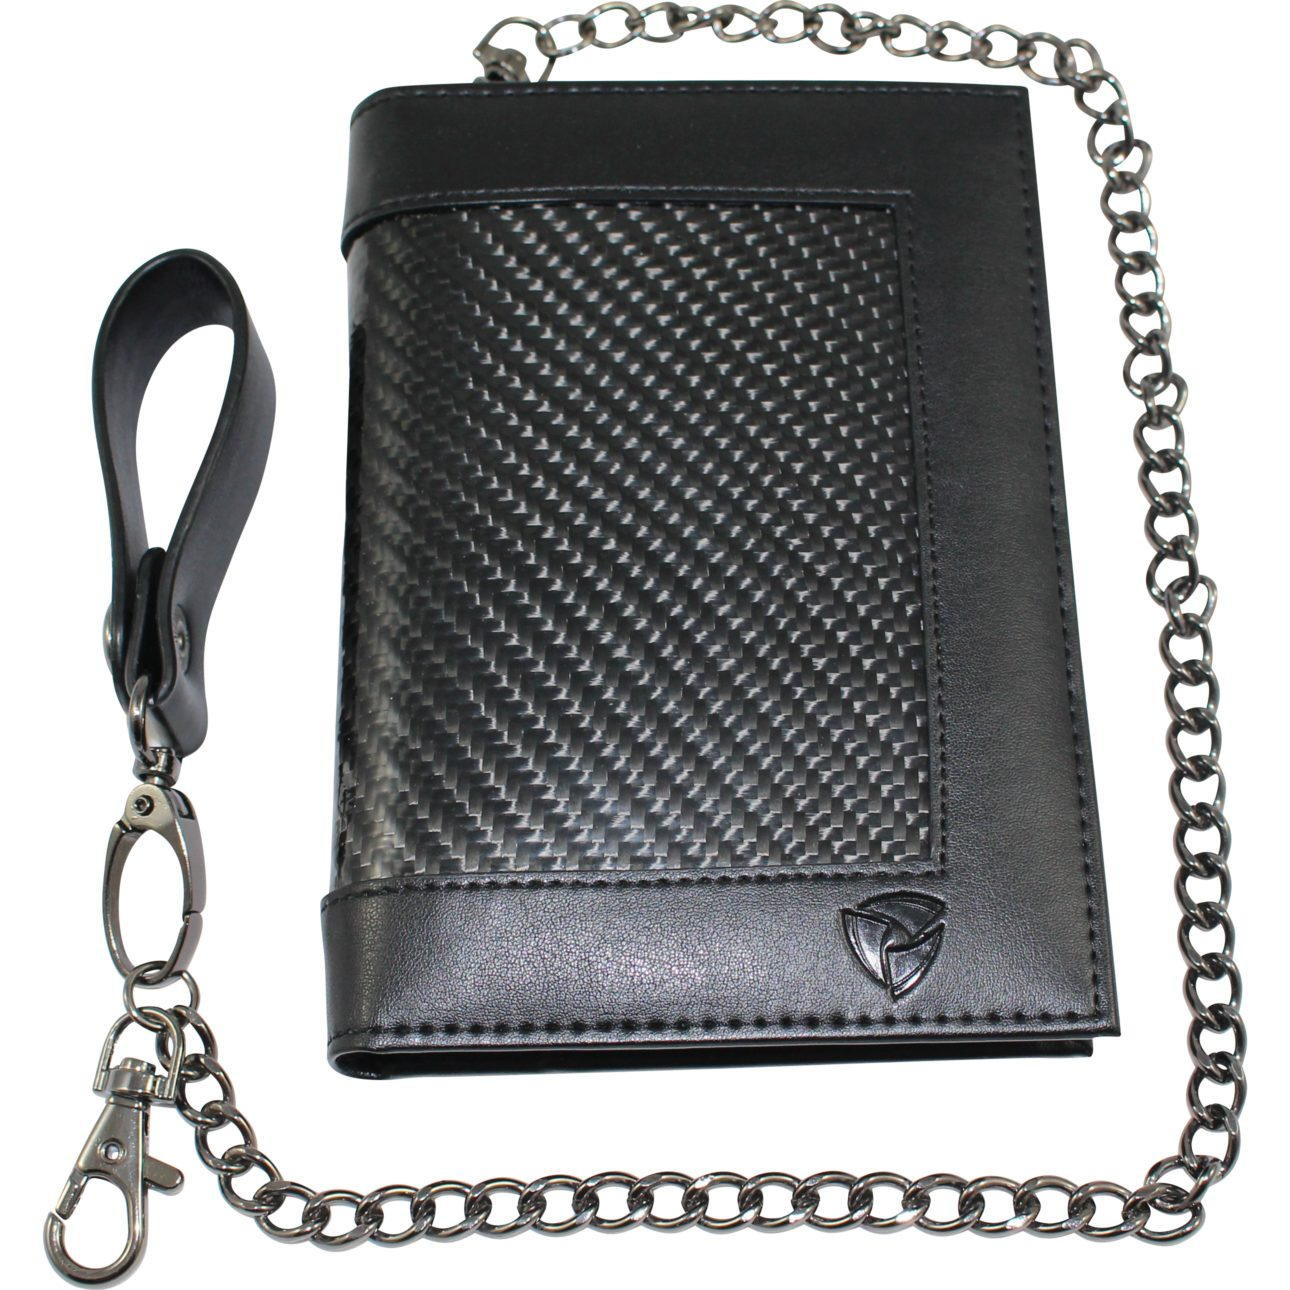 Carbon Fiber Leather RFID Blocking Anti-theft Travel Passport Wallet With Removable Chain by SOS EDC™ - Never Lose Your Wallet Again!